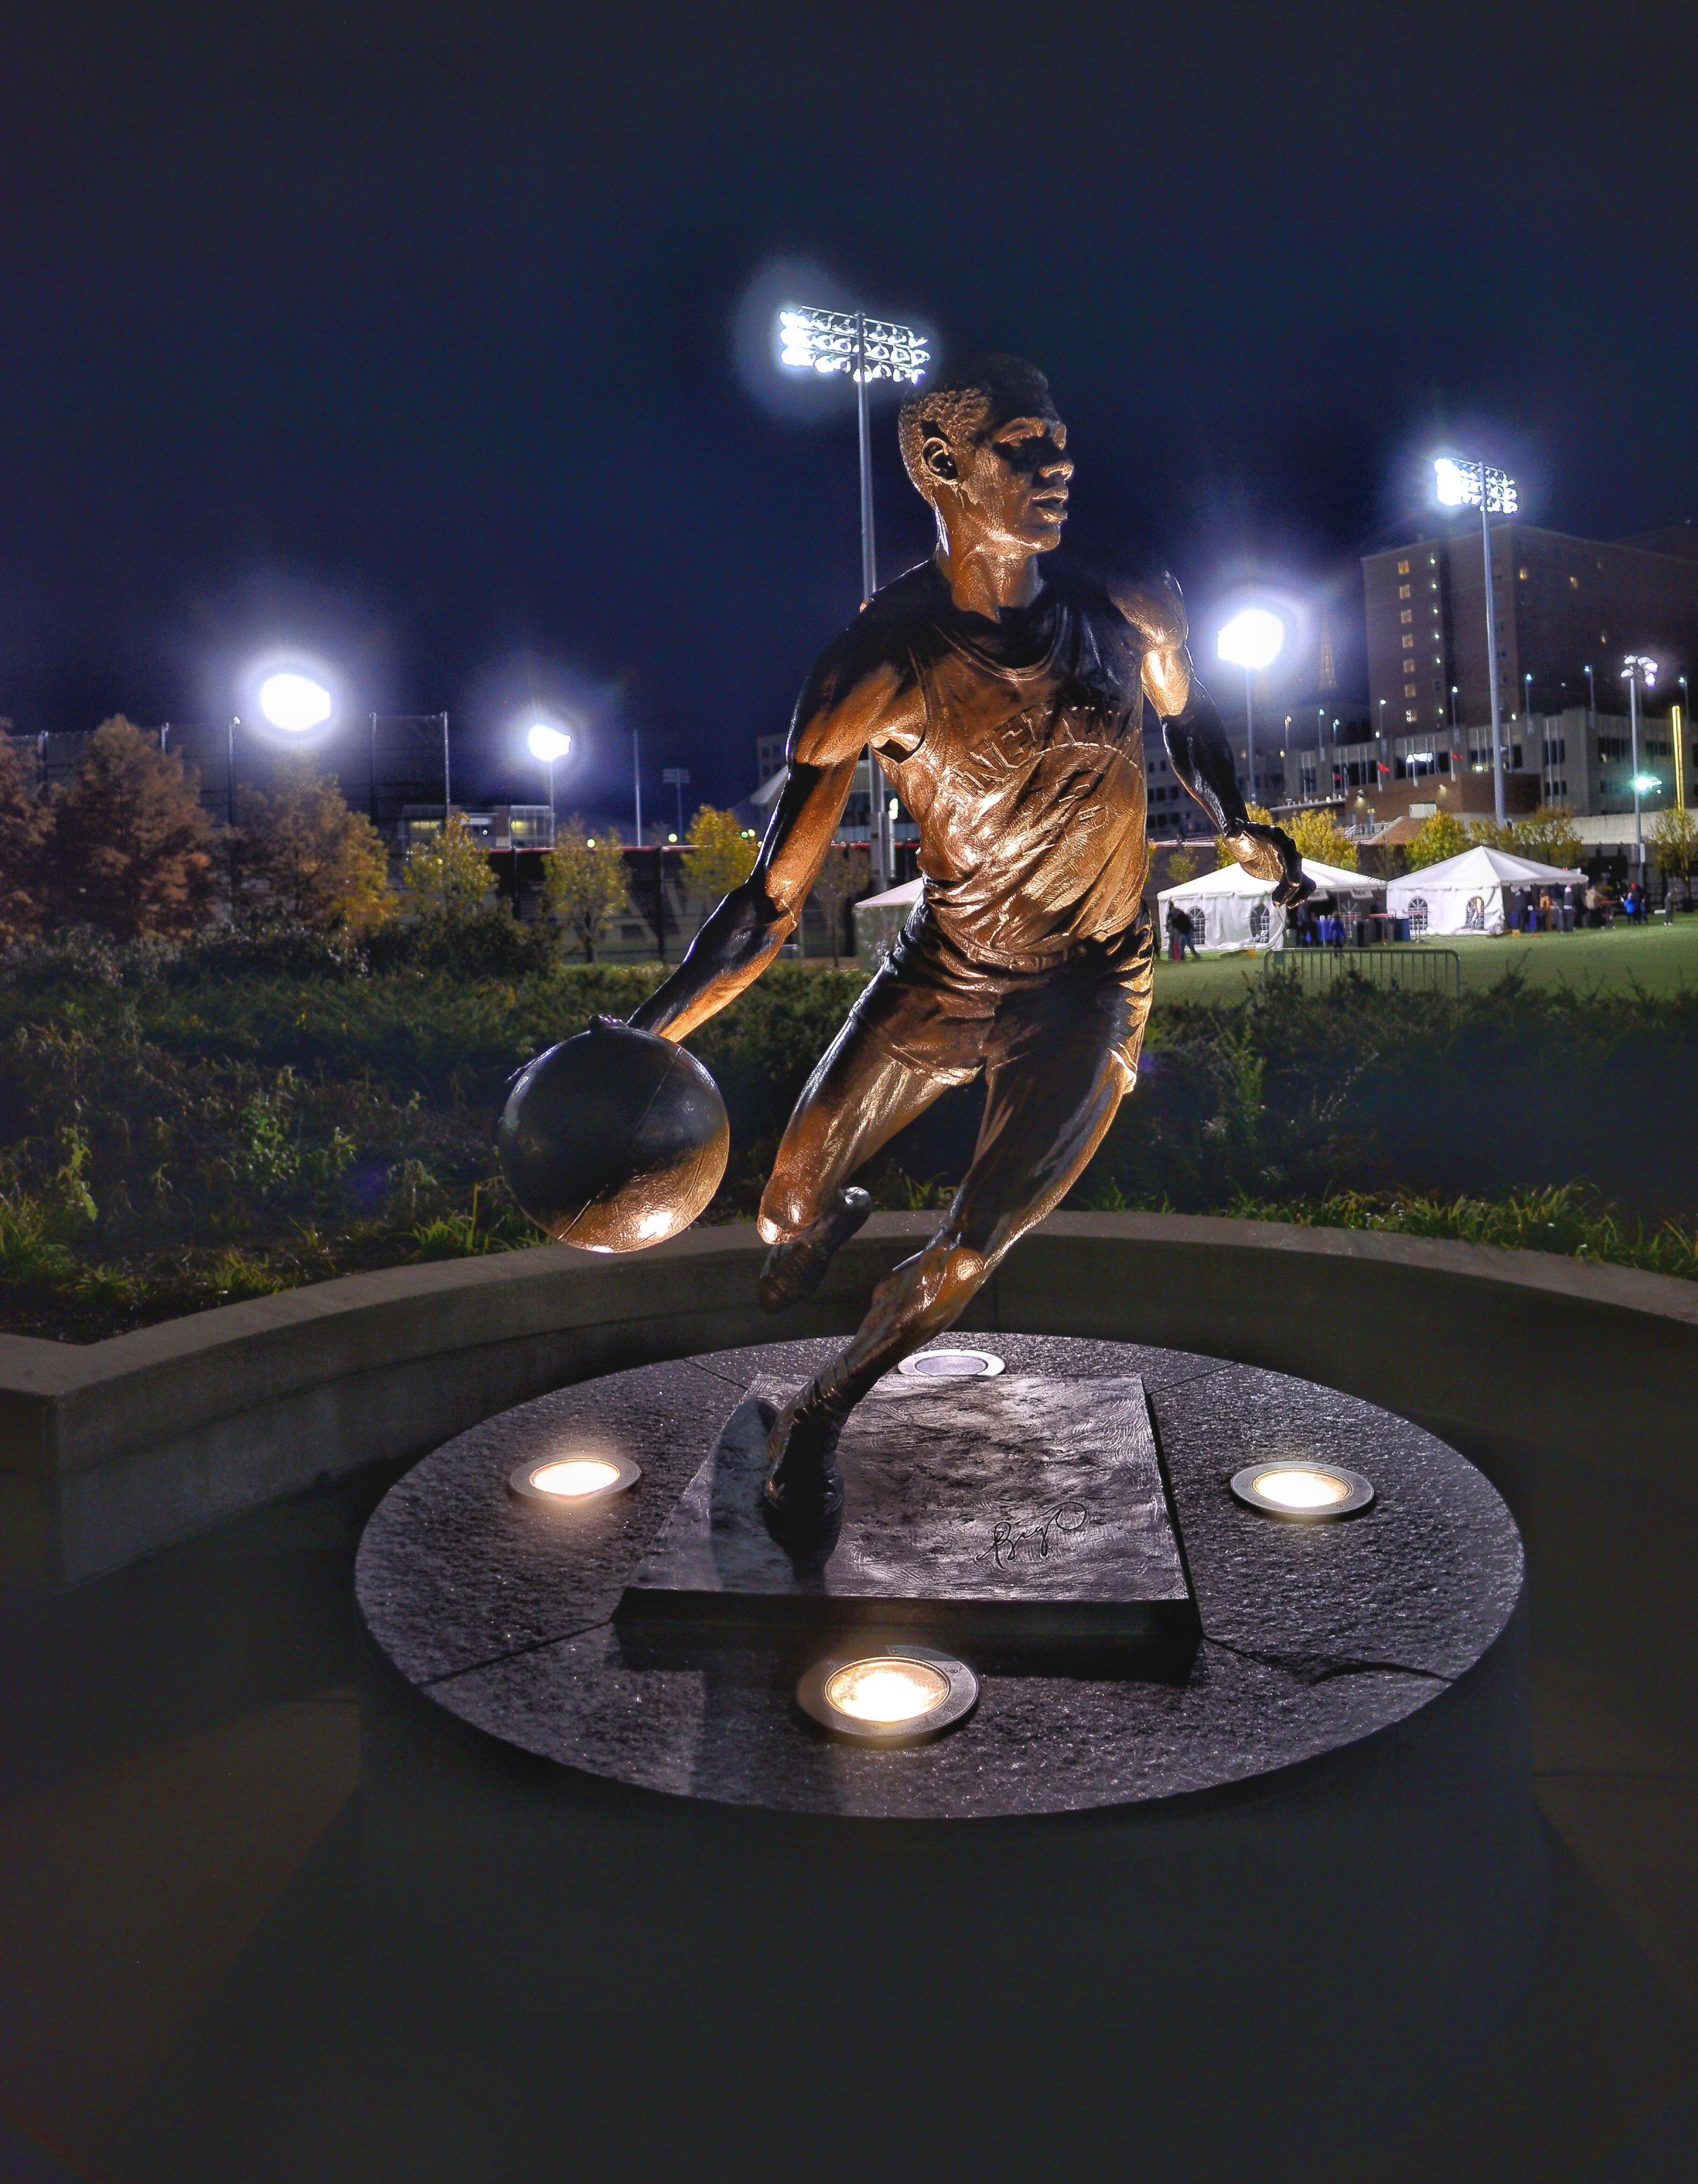 Oscar Robertson statue outside of the Lindner building. Robertson, one of the greatest basketball players of all time at any level played at Cincinnati from 1957 through 1960 and averaged 34 points 15 rebounds and 7 assists per game.